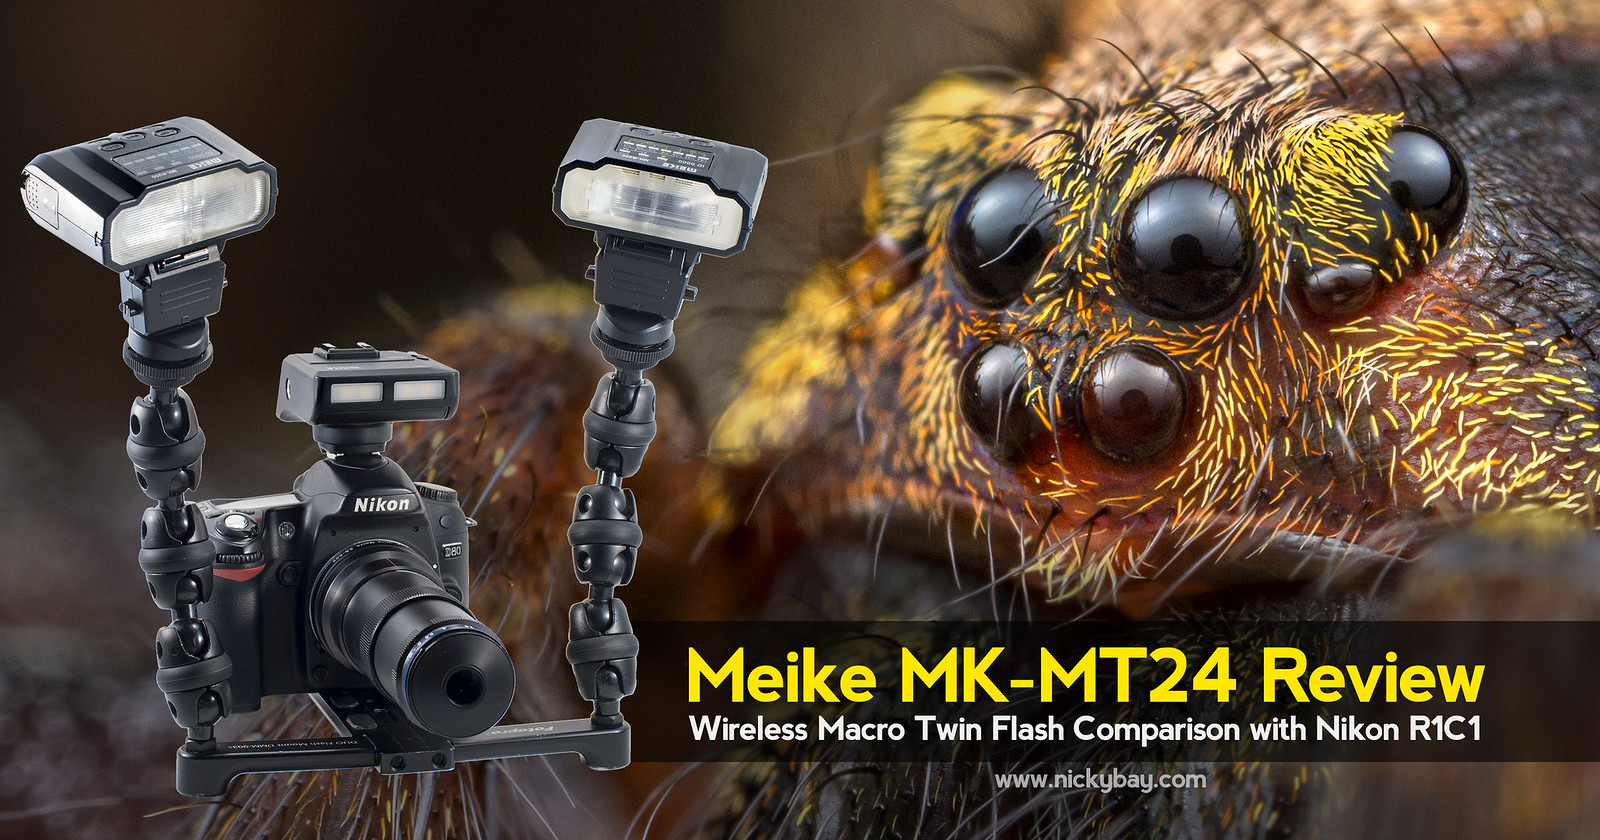 Meike MK-MT24 Review: Wireless Macro Twin Flash Comparison